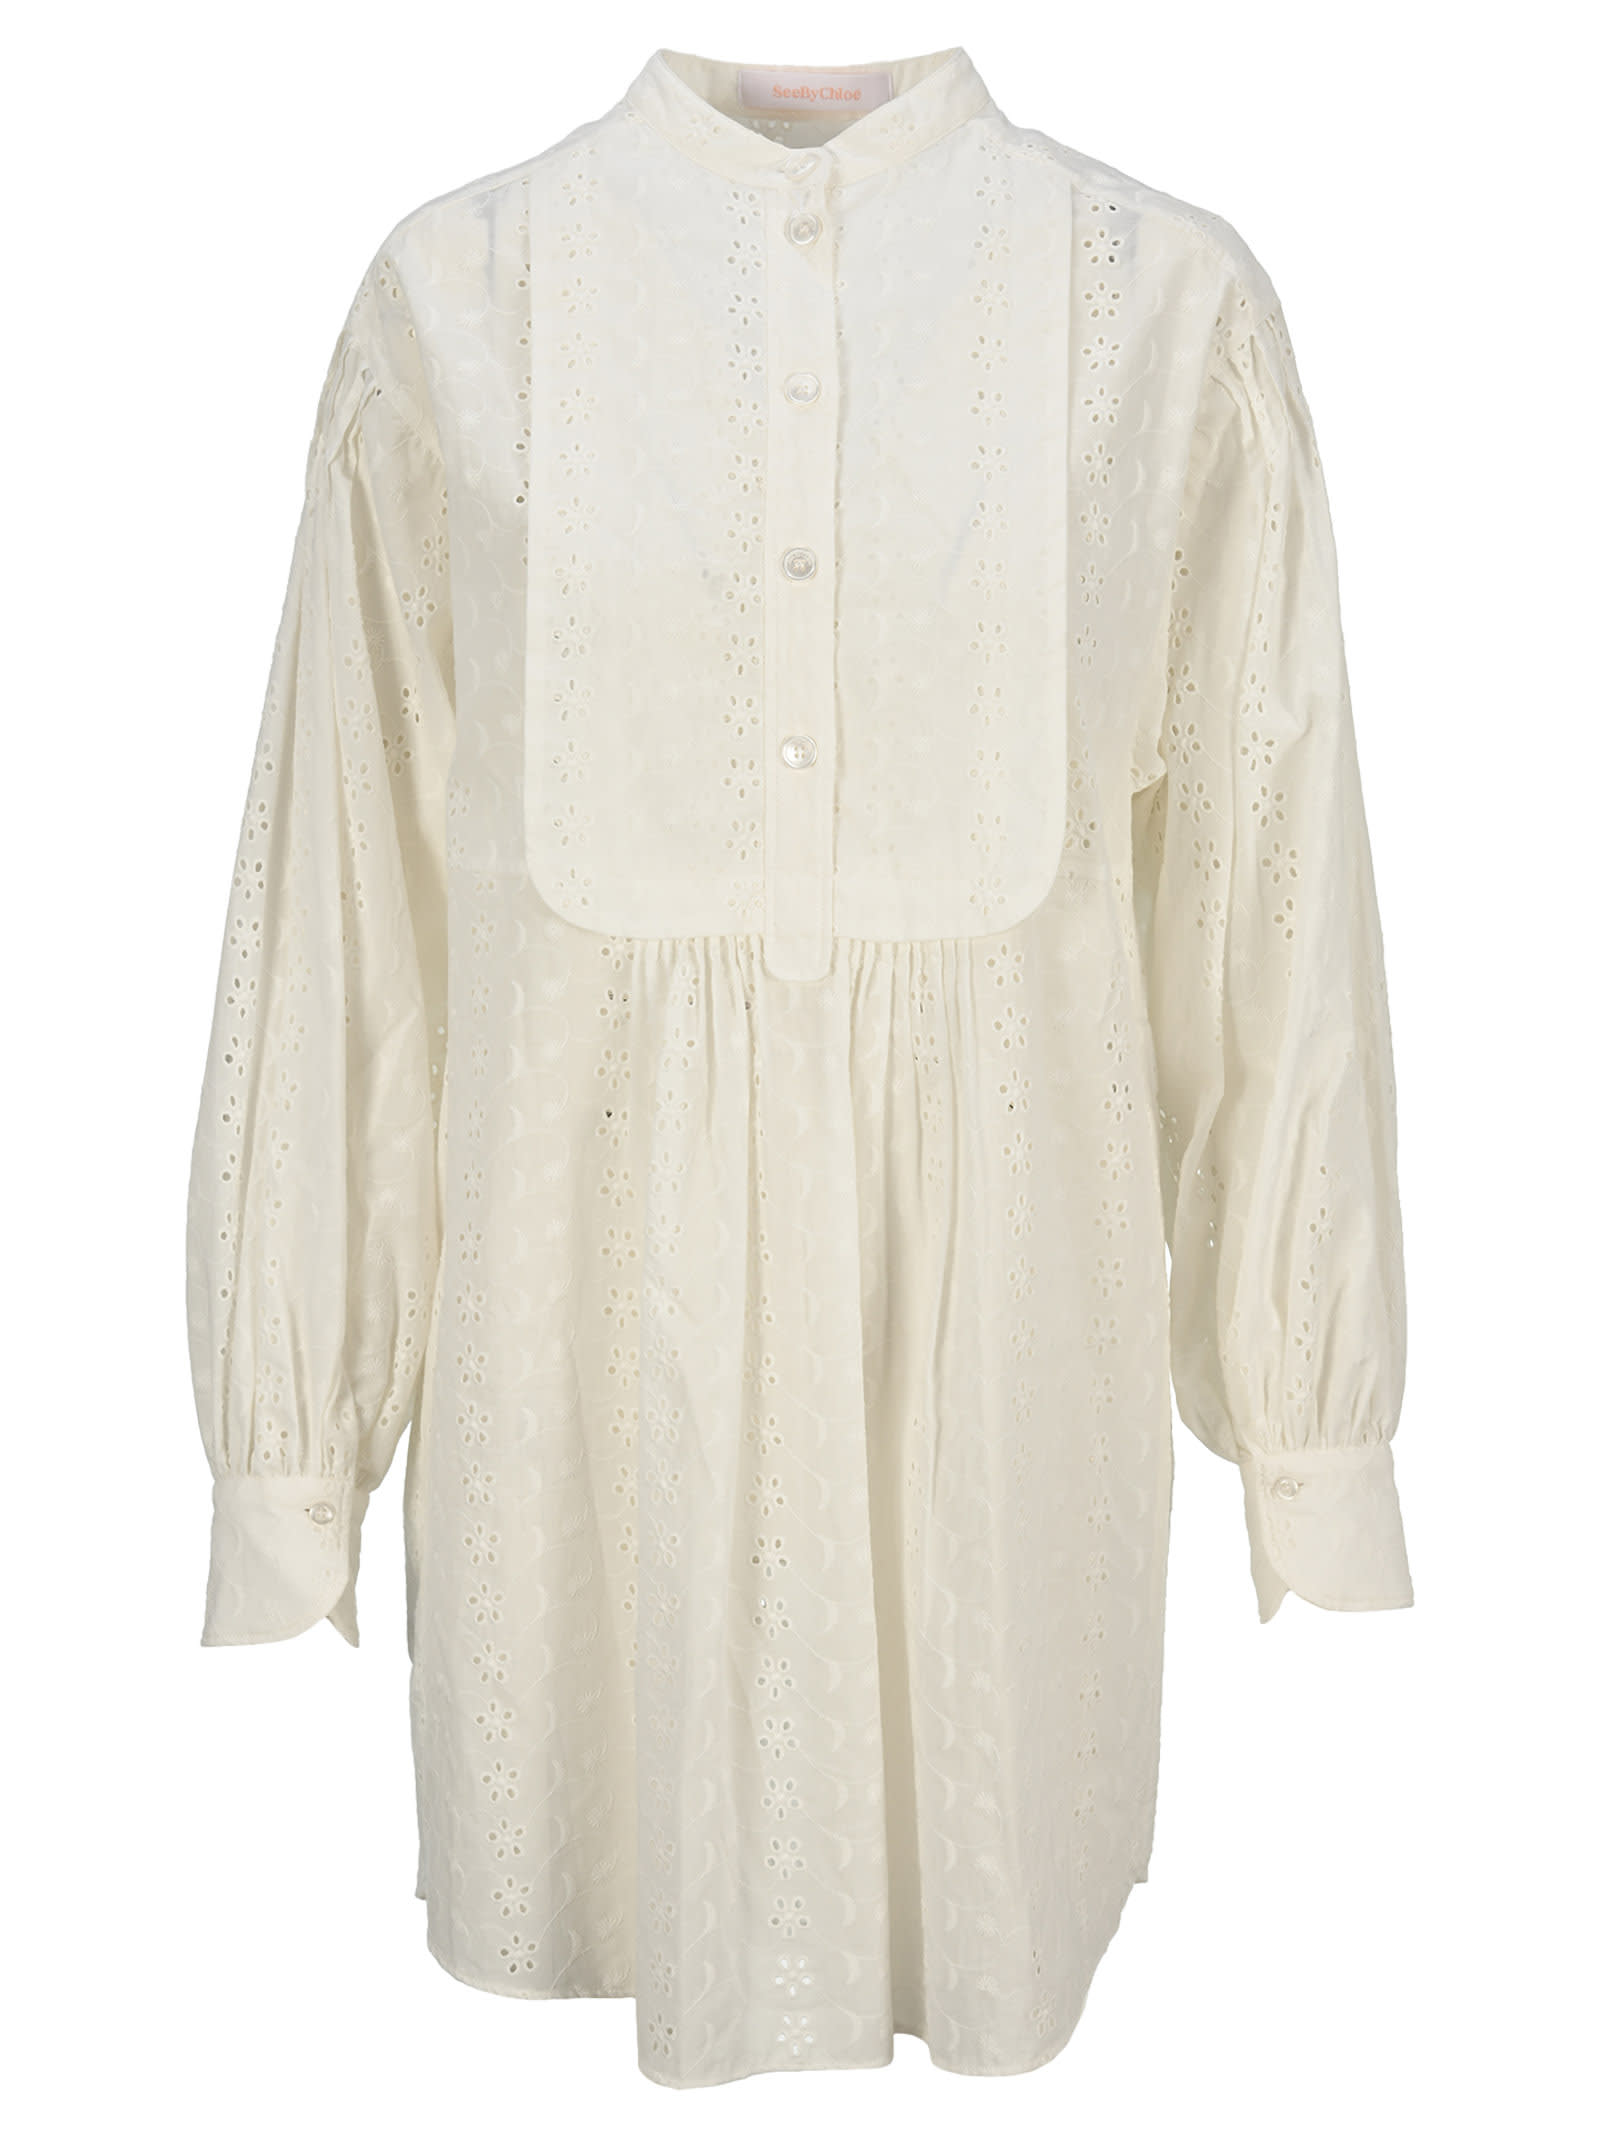 See By Chloé Dresses SEE BY CHLOE BRODERIE ANGLAISE SHIRT DRESS